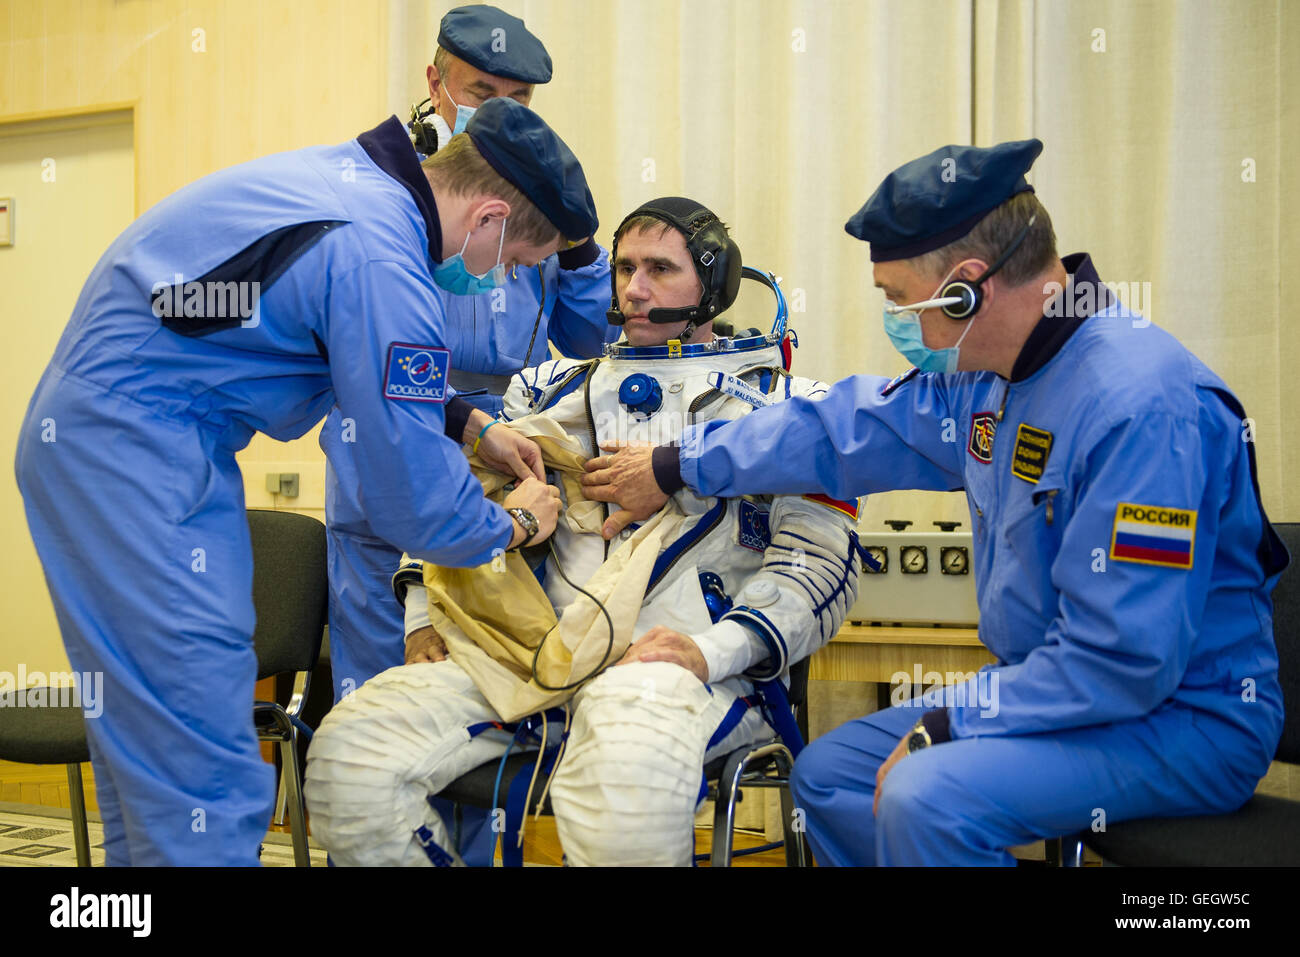 Expedition 46 Preflight  12150052 - Stock Image